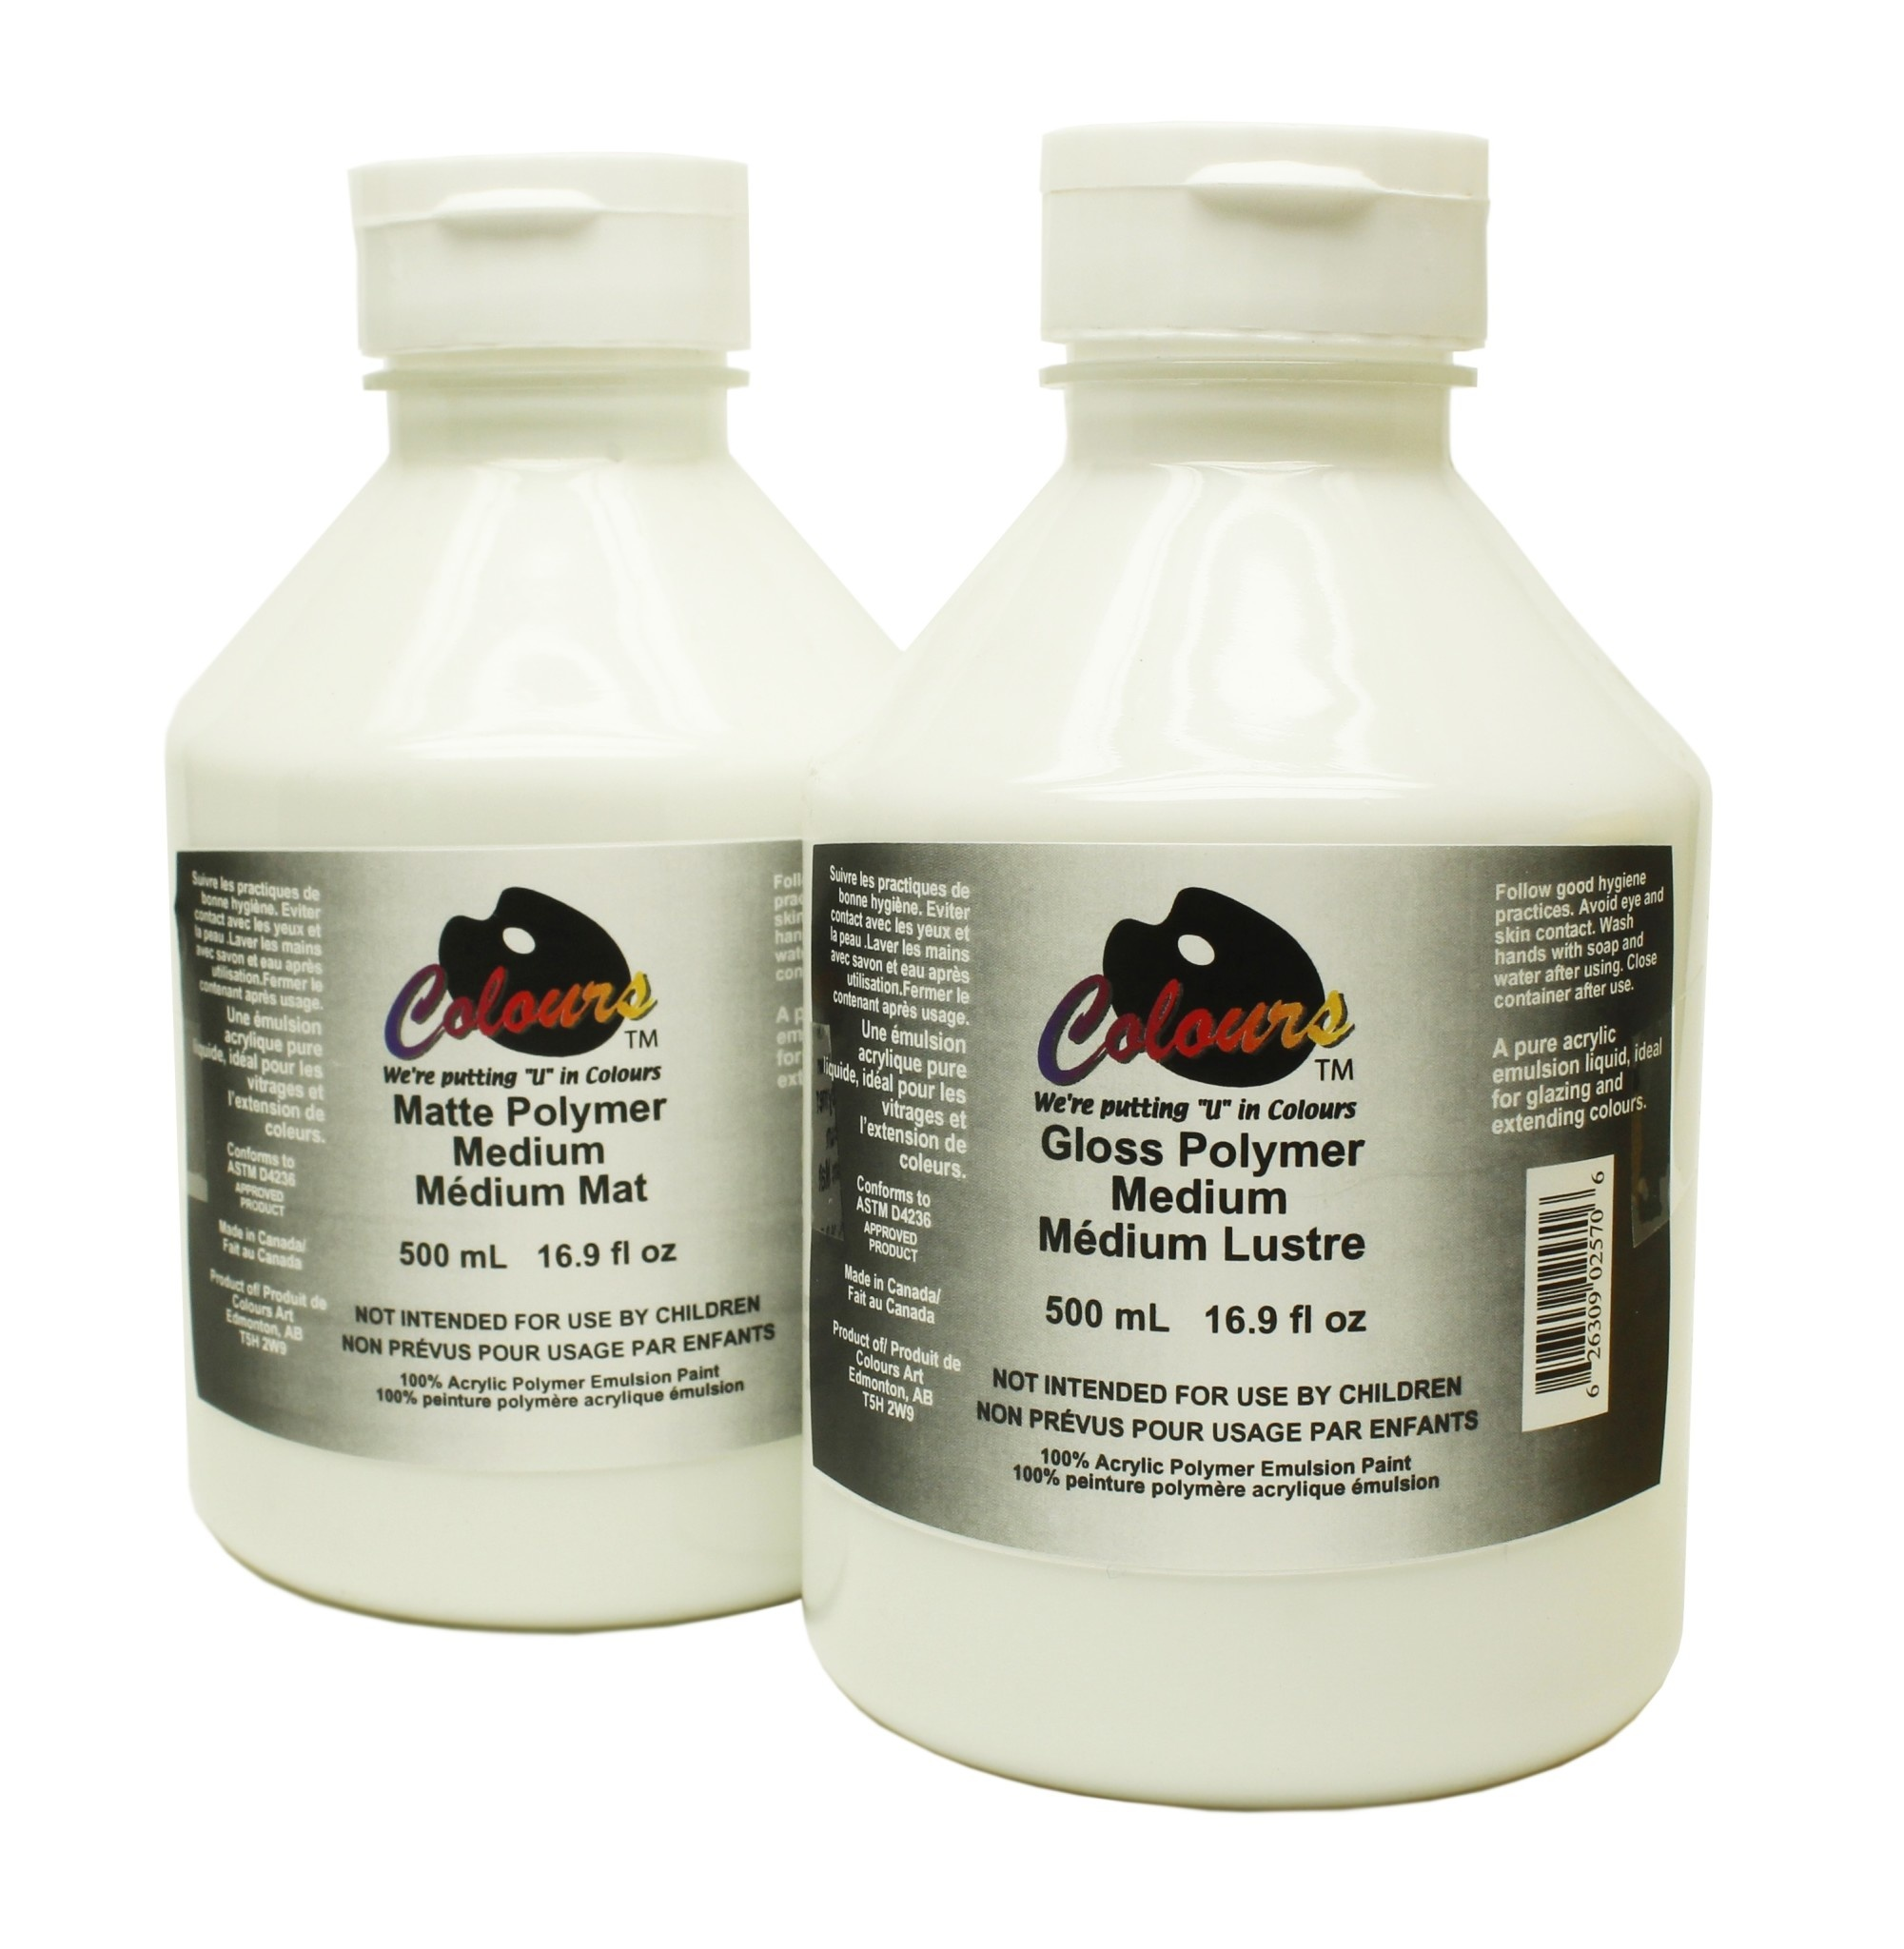 COLOURS MATTE POLYMER MEDIUM 500ML